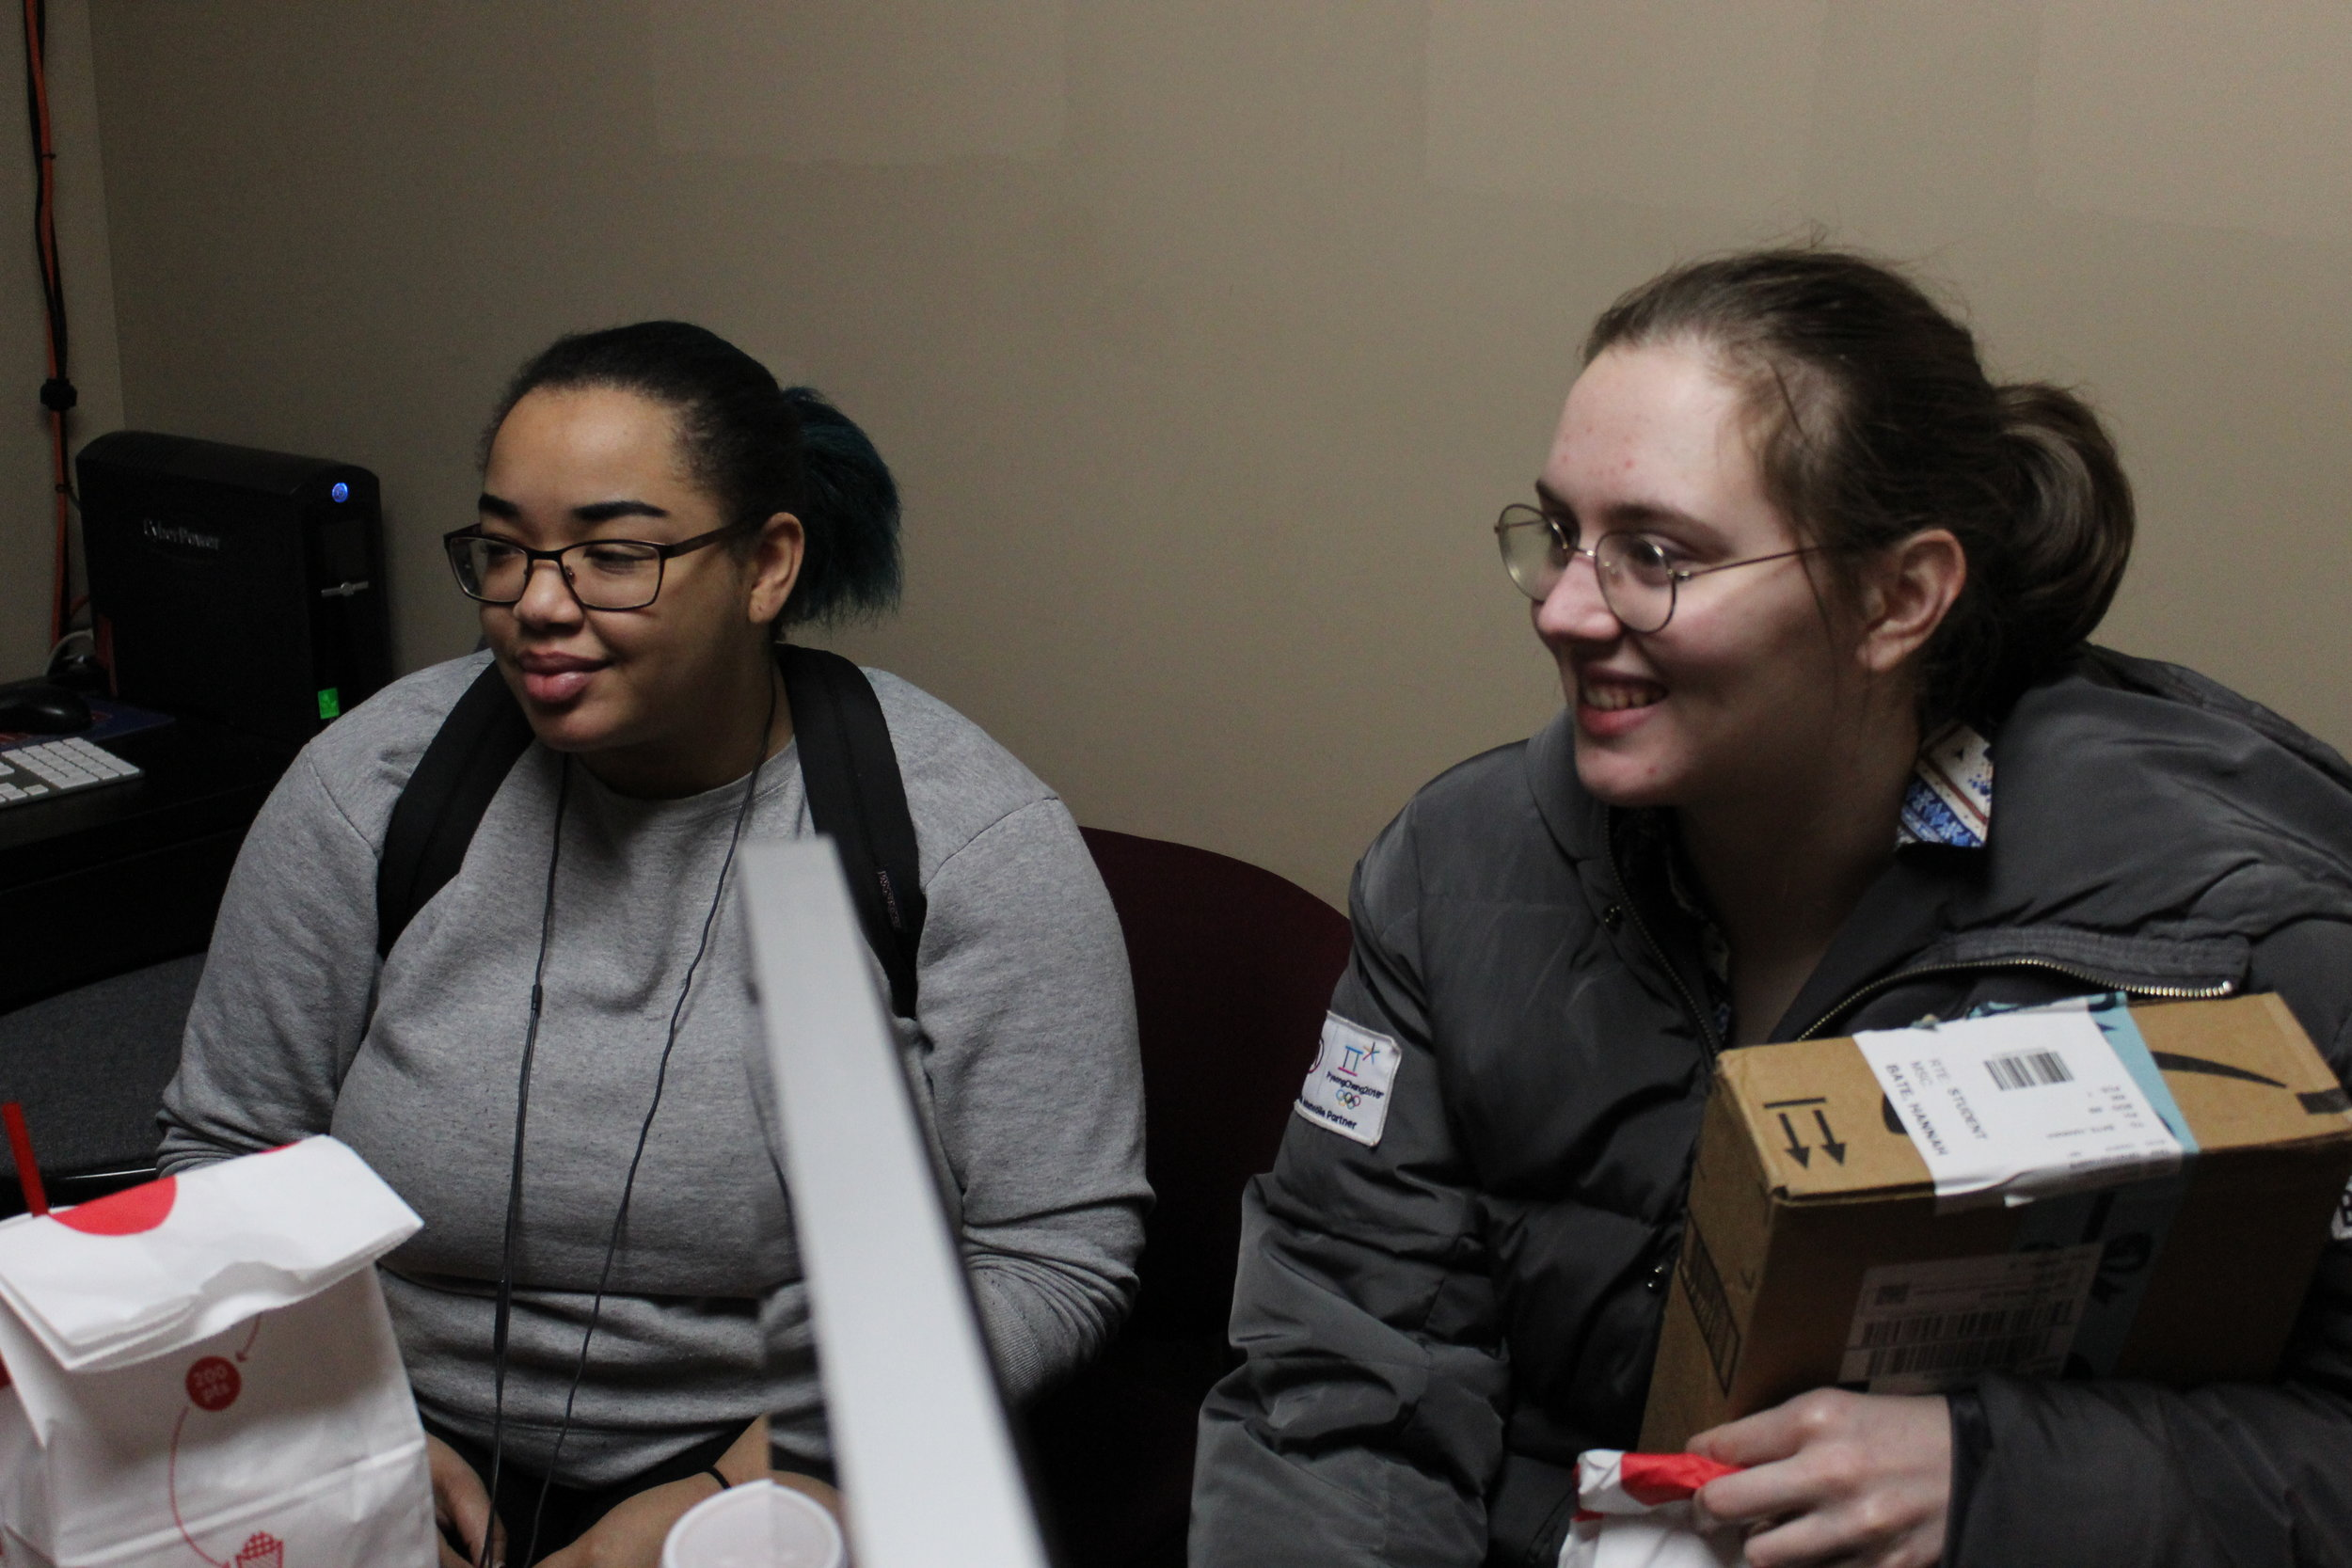 During downtime, students Ashia Davenport and Hannah Bate have a conversation with Professor Gopal.